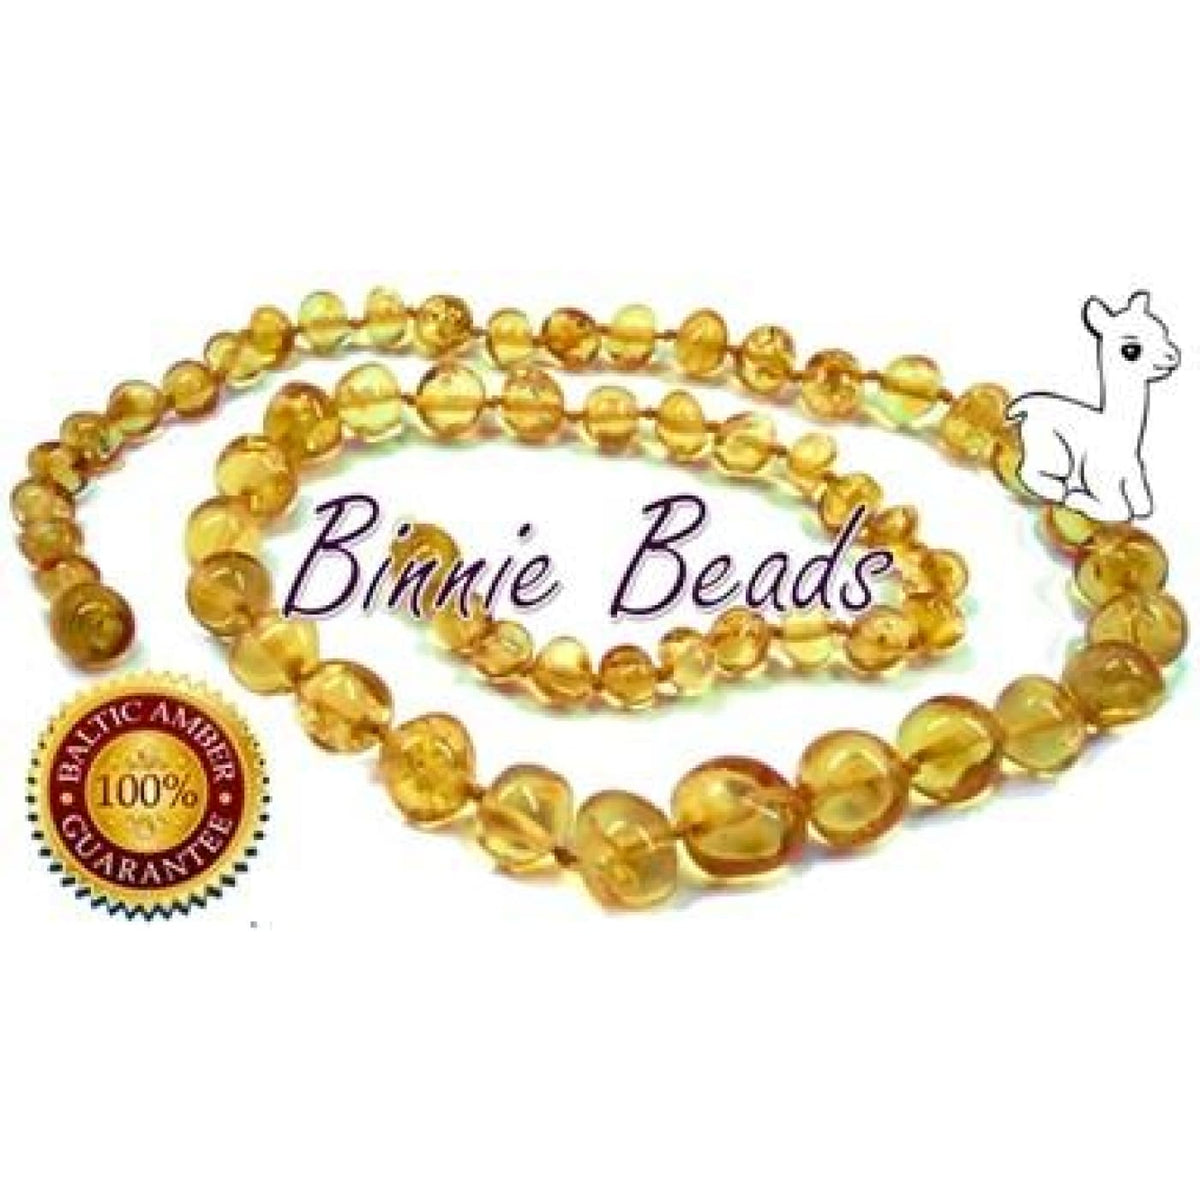 Binnie Baltic Amber Teething Baby Necklace - Honey 32CM - NURSING & FEEDING - TEETHERS/TEETHING JEWELLERY